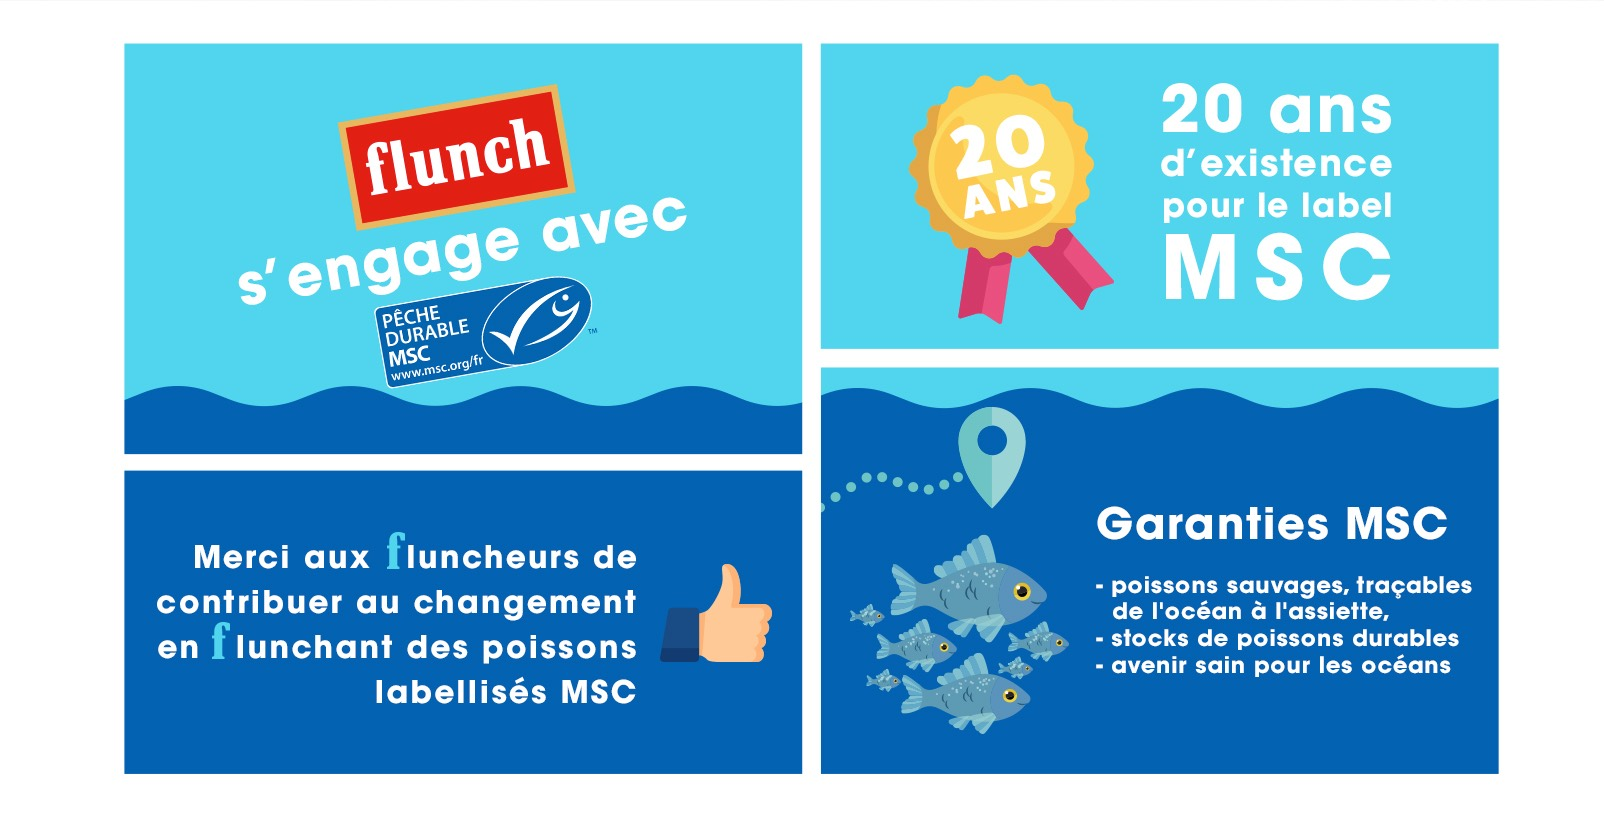 flunch s'engage avec msc